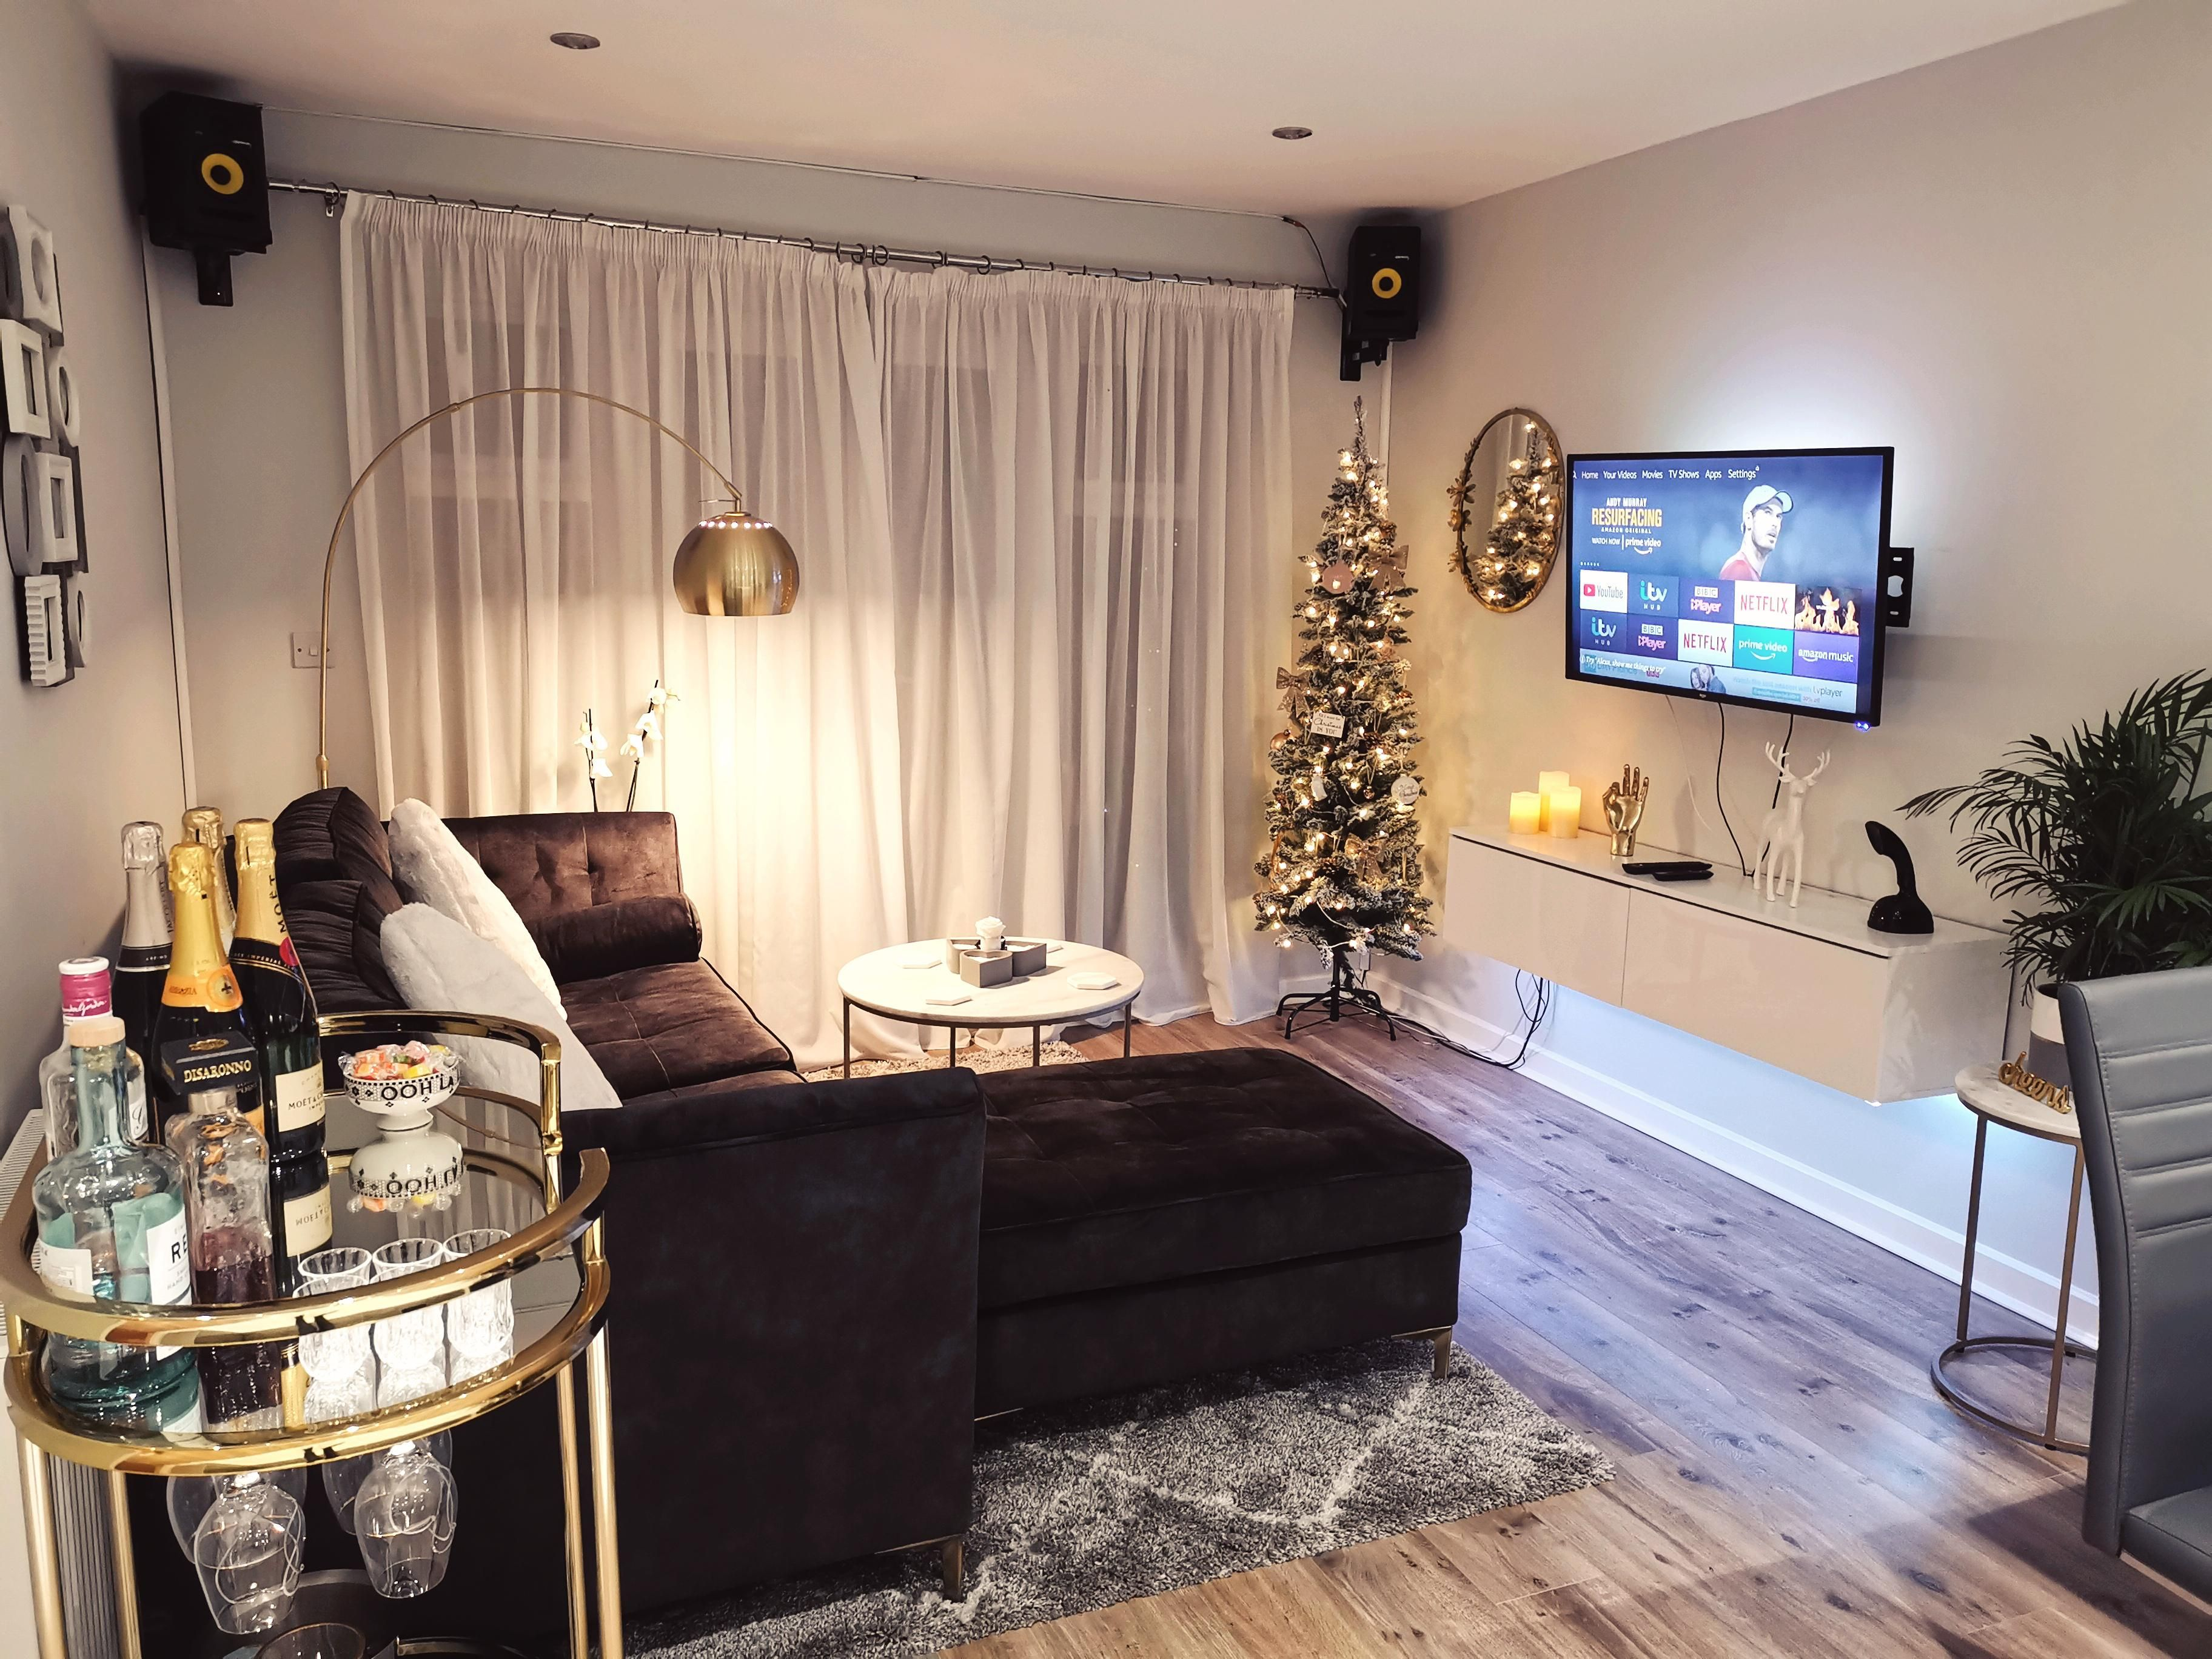 Mine And My Fiance S Small Apartment Living Room In Our First Home Together West Suss Small Apartment Living Small Apartment Living Room Apartment Living Room